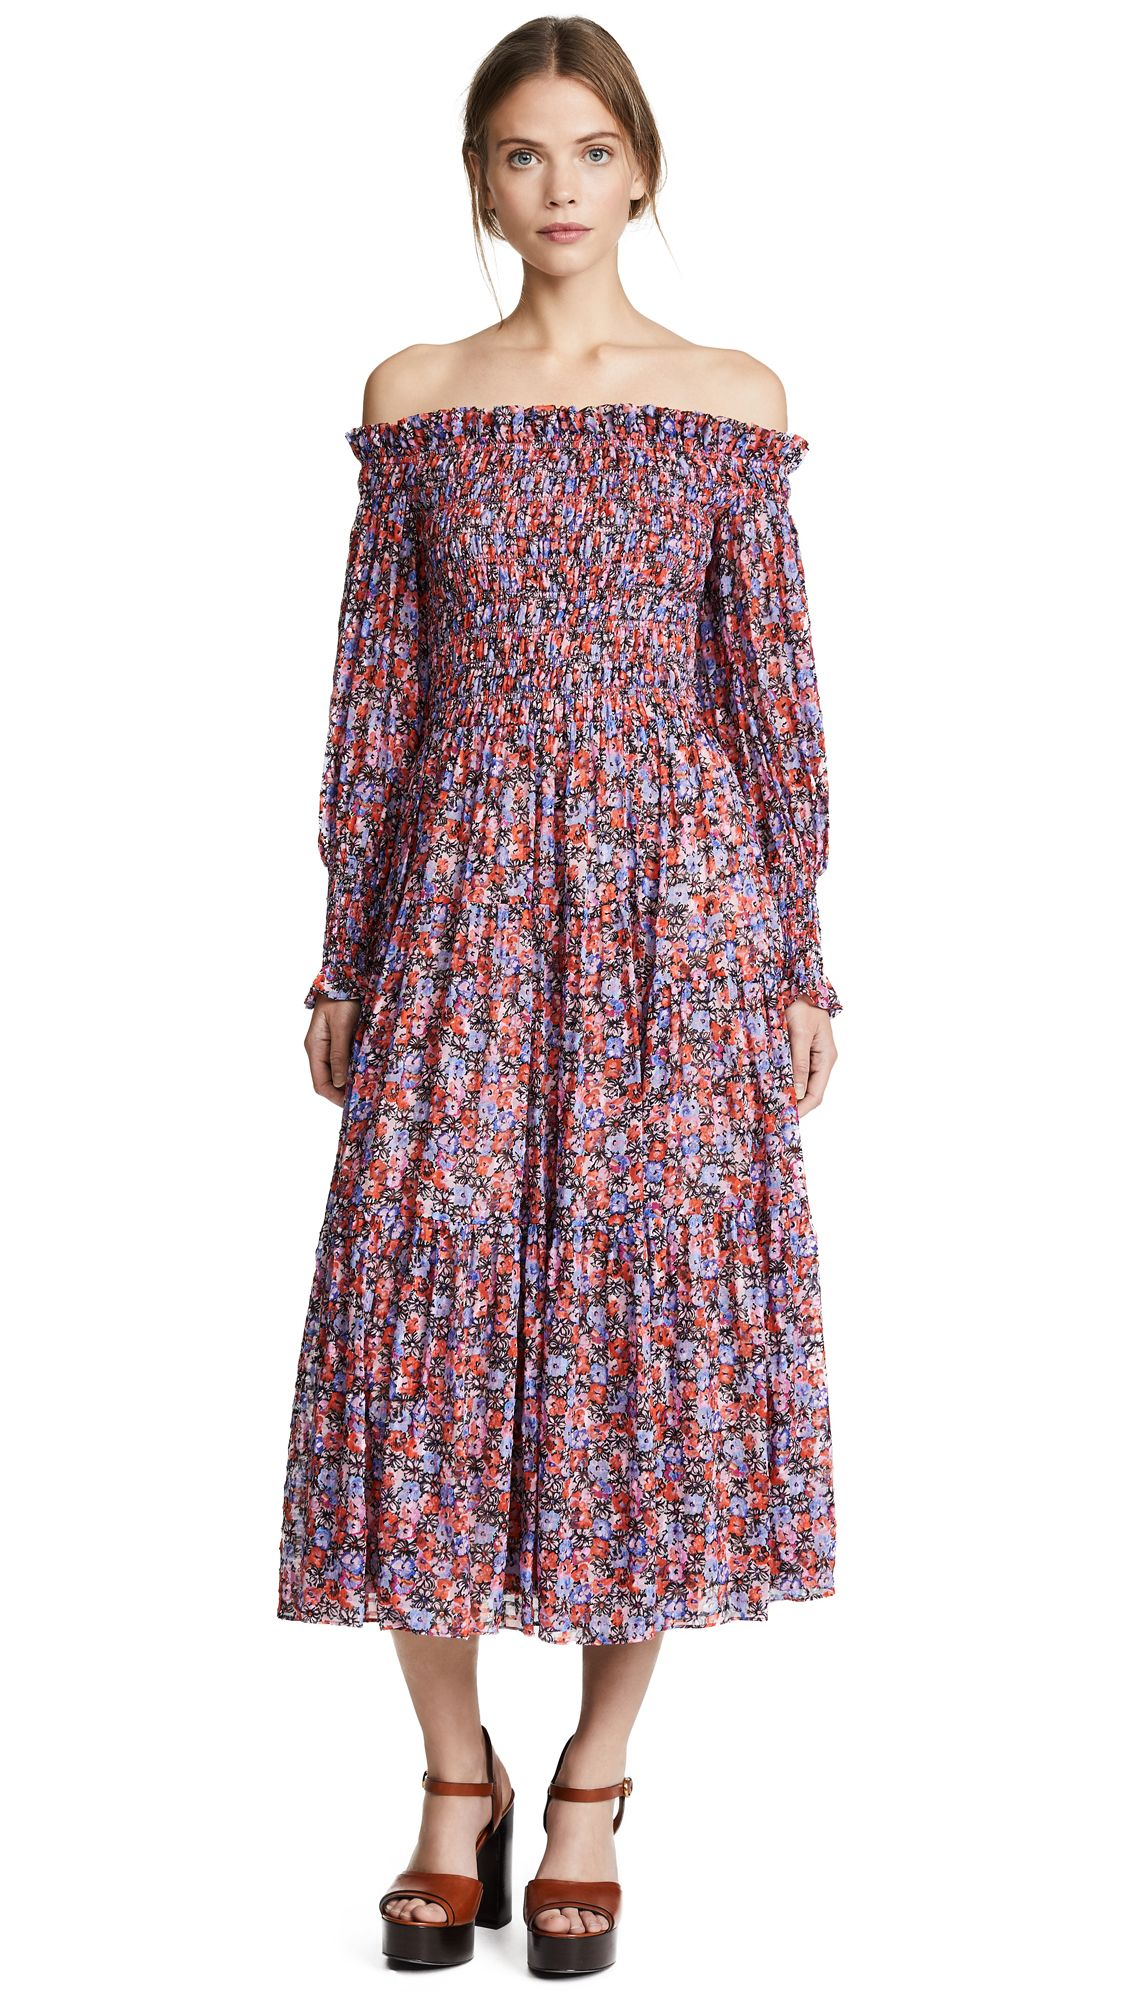 a141f866d132 REBECCA TAYLOR OFF SHOULDER COSMIC FLOWER DRESS.  rebeccataylor  cloth